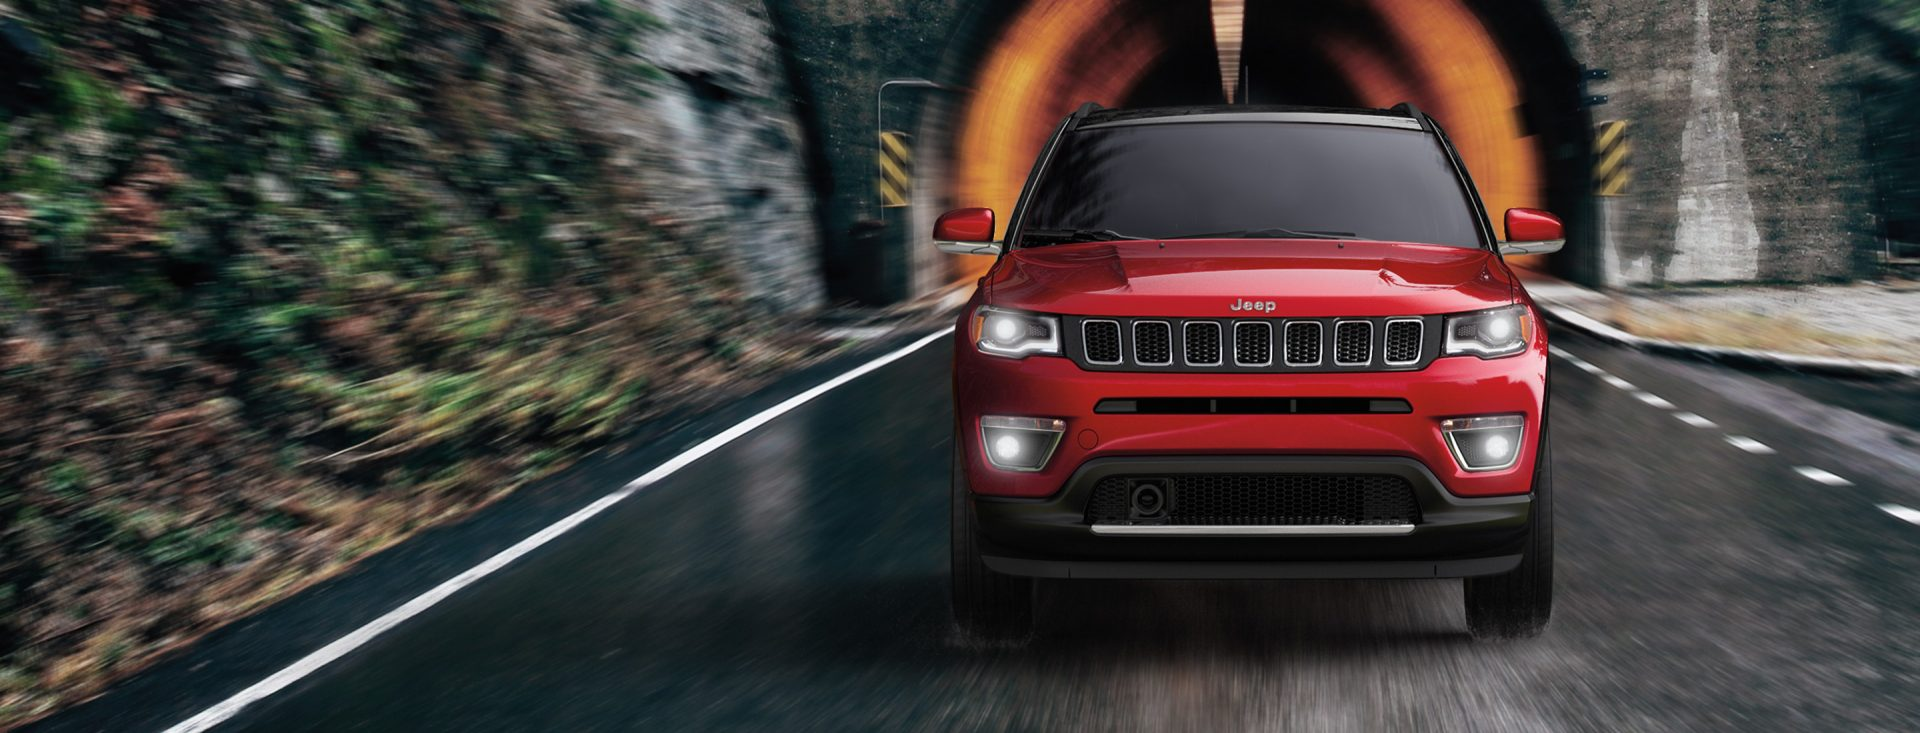 2018 JEEP COMPASS SAFETY AND SECURITY